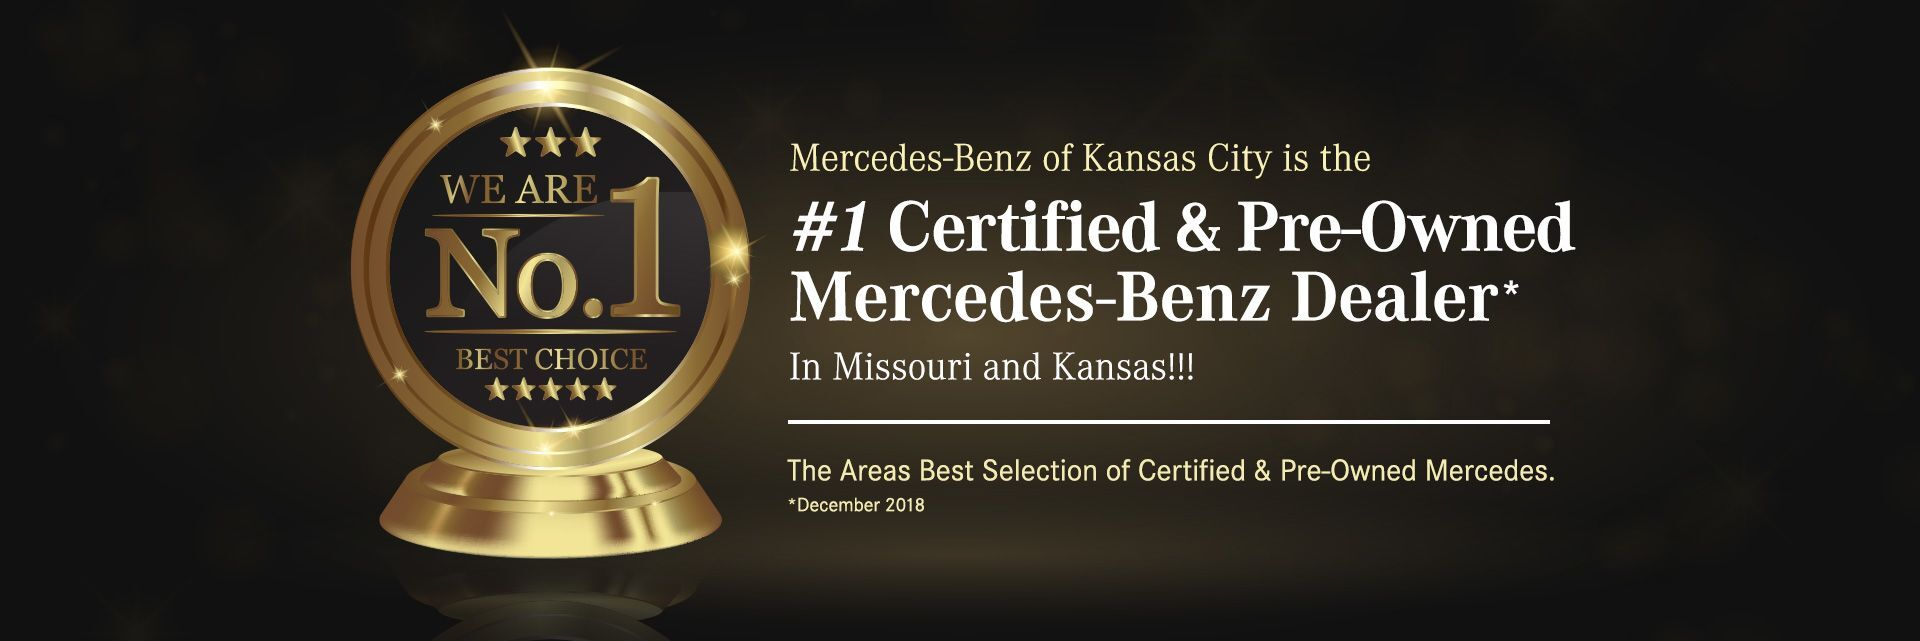 Mercedes Benz Dealership Kansas City Mo Pre Owned Cars Mercedes